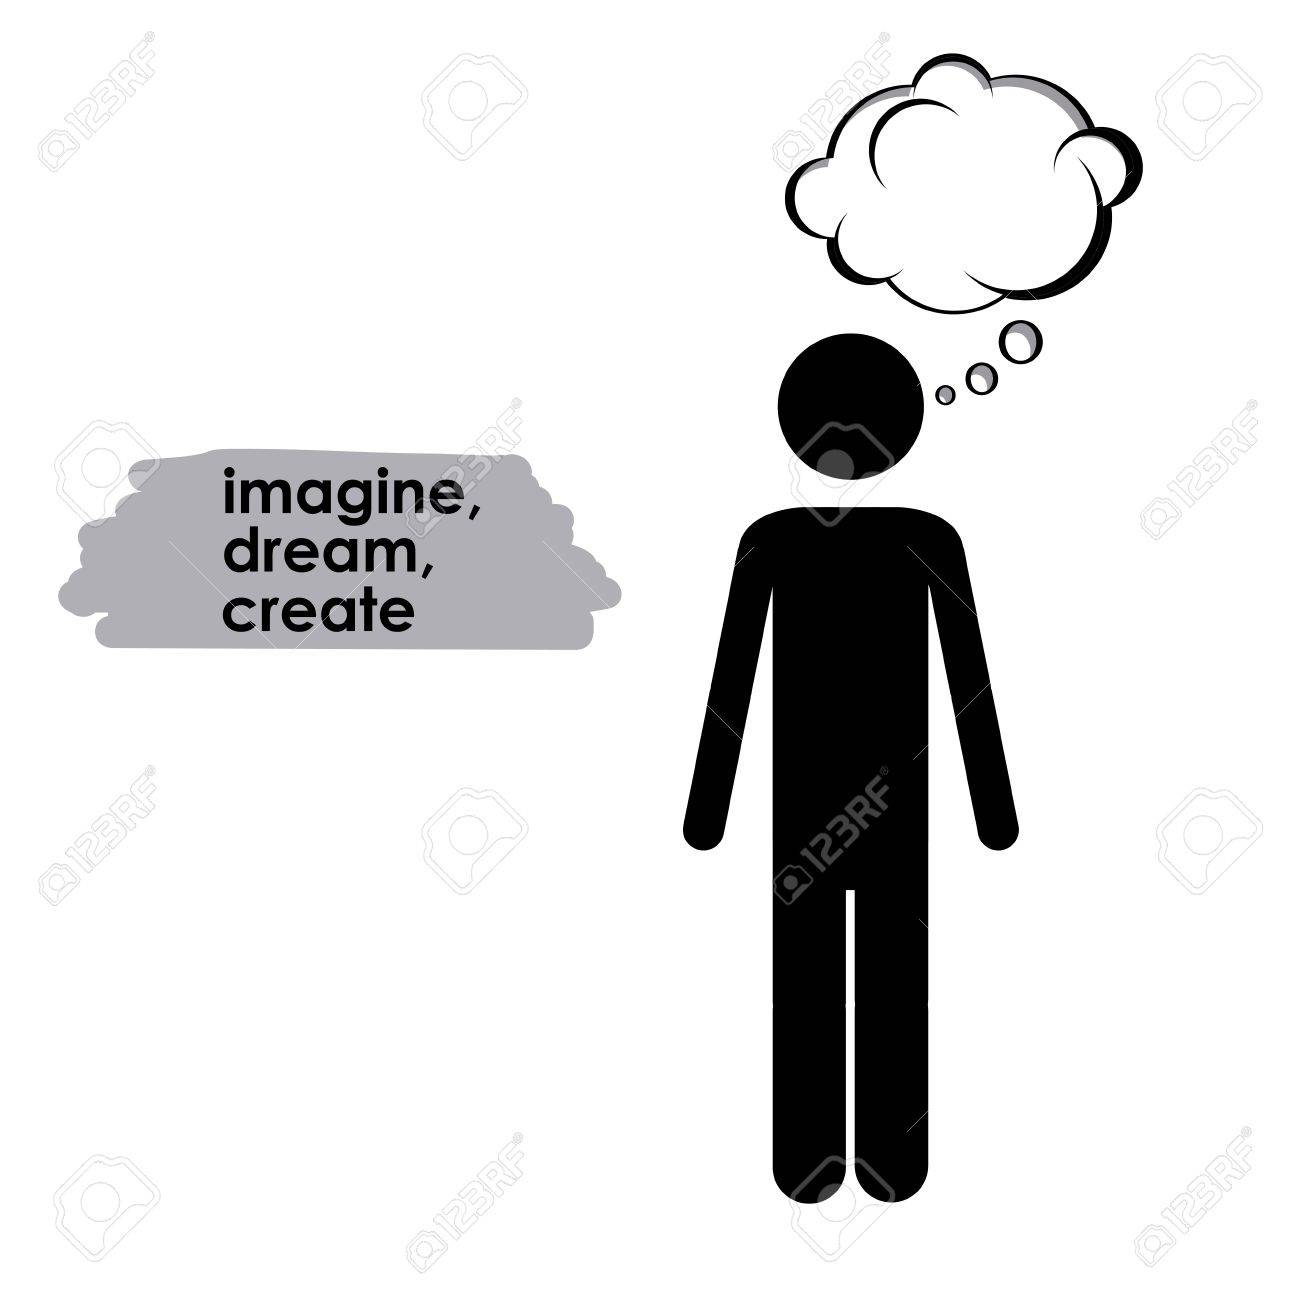 1300x1300 Imagine Design Over White Background Vector,illustration Royalty